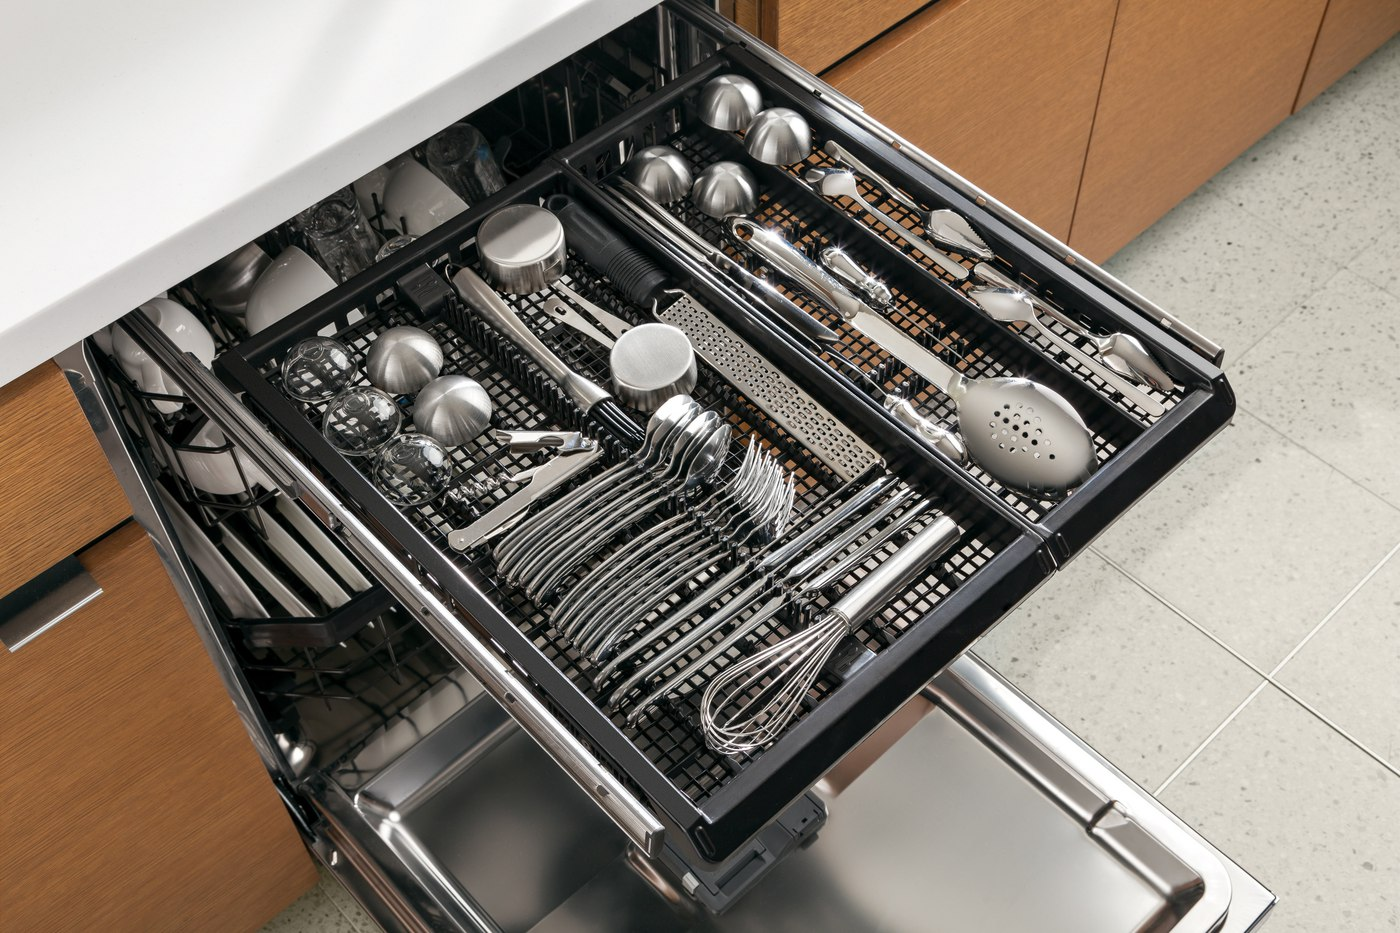 Best Dishwasher Cutlery Racks (Reviews/Ratings/Prices)